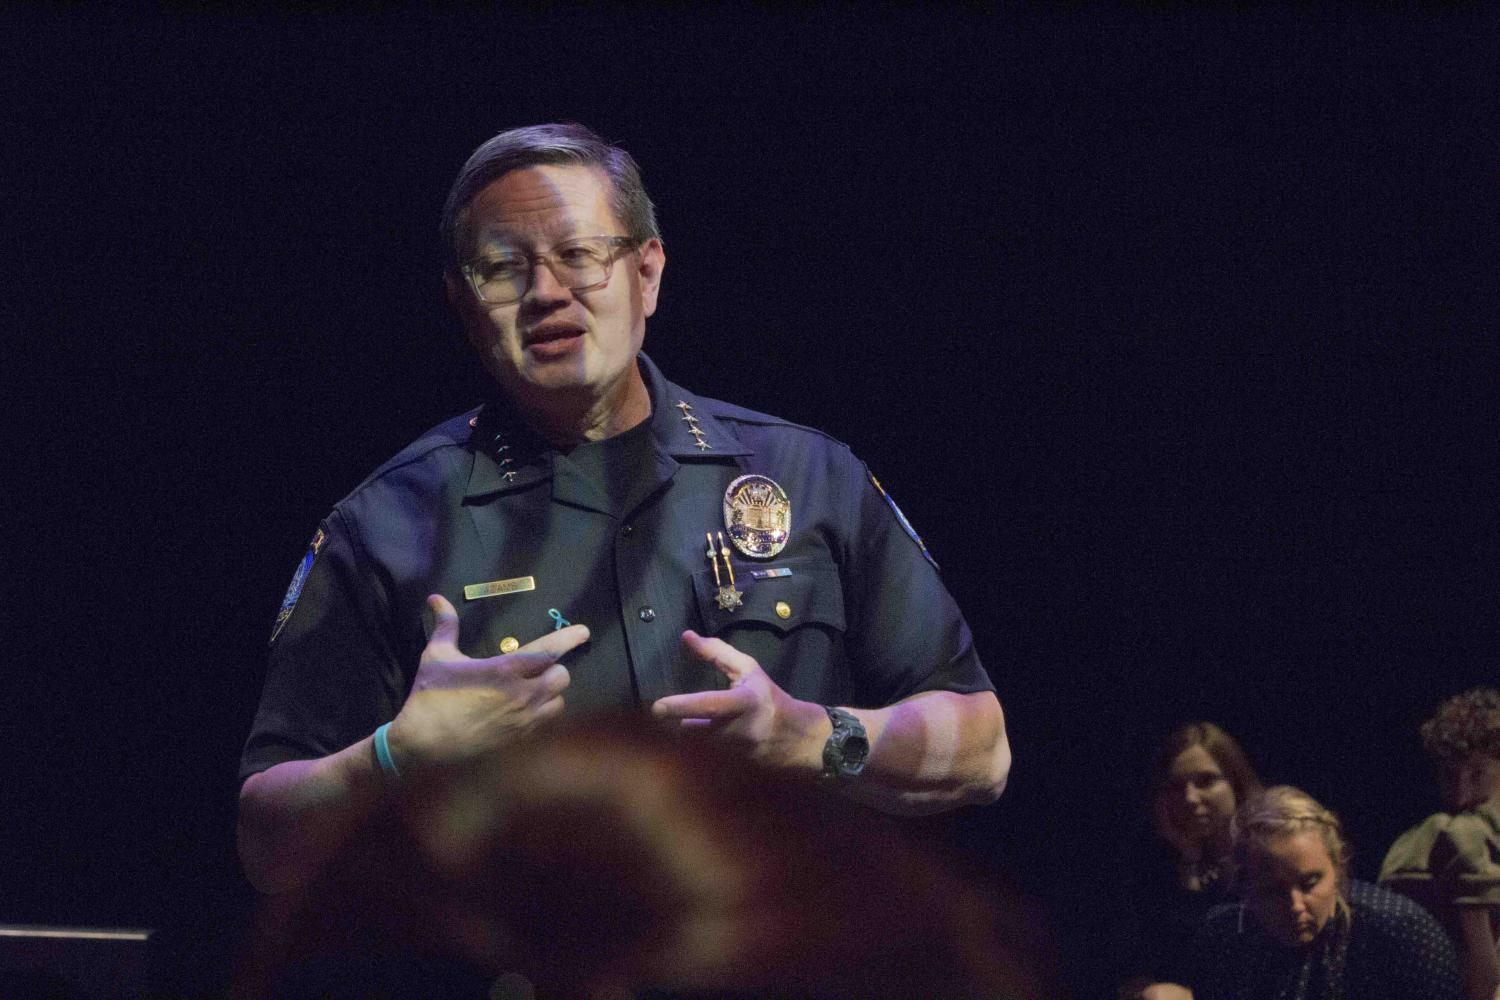 Chief Johnnie Adams from the Santa Monica Police, at the Q&A panel talk after the performance. Present to talk about Title IX and sexual assaults. Voices of Hope, play by Pamela Lassiter Cathey about sexual assault and its consequences for the victims. On Studio Stage Productions/Performances at Santa Monica College, Calif. On Friday April 28, 2017. Photo by Emeline Moquillon On Friday April 28, 2017. (Emeline Moquillon)